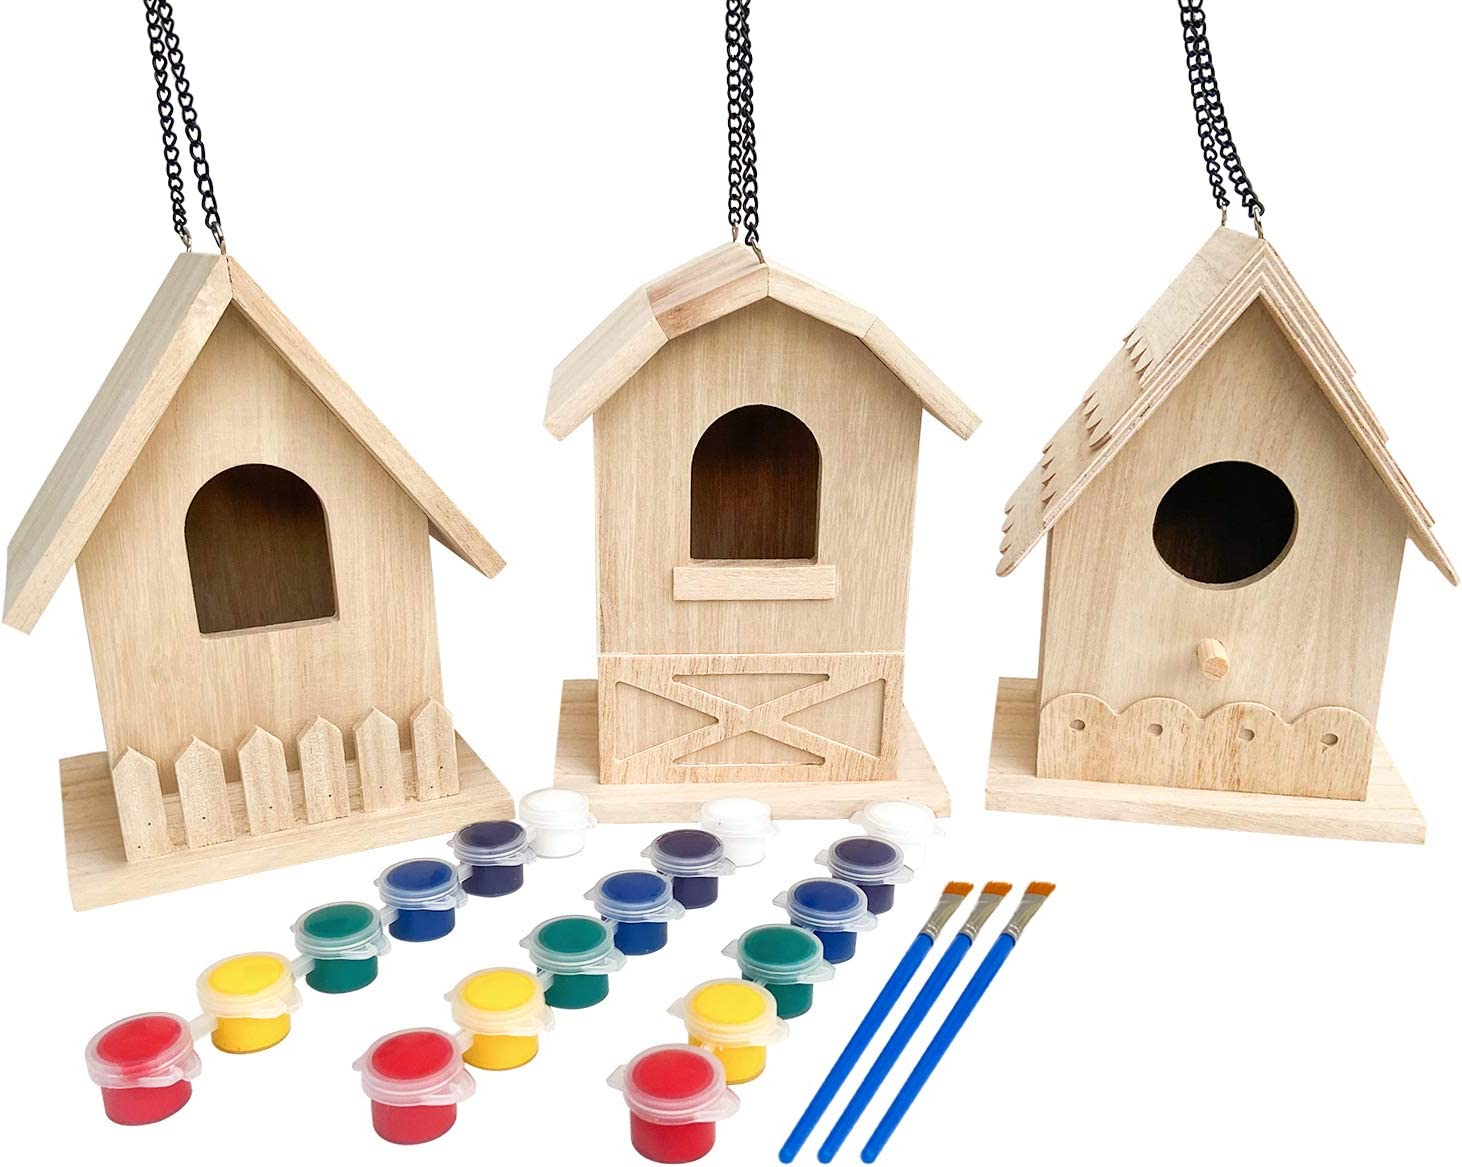 Backyard Paradise   Premium Paint Your Own Birdhouse Craft Kit   Wooden Bird House Kit (Each Includes 6 Paint Colors and Brush)   Pack of 3 Gift Set   Natural Wood